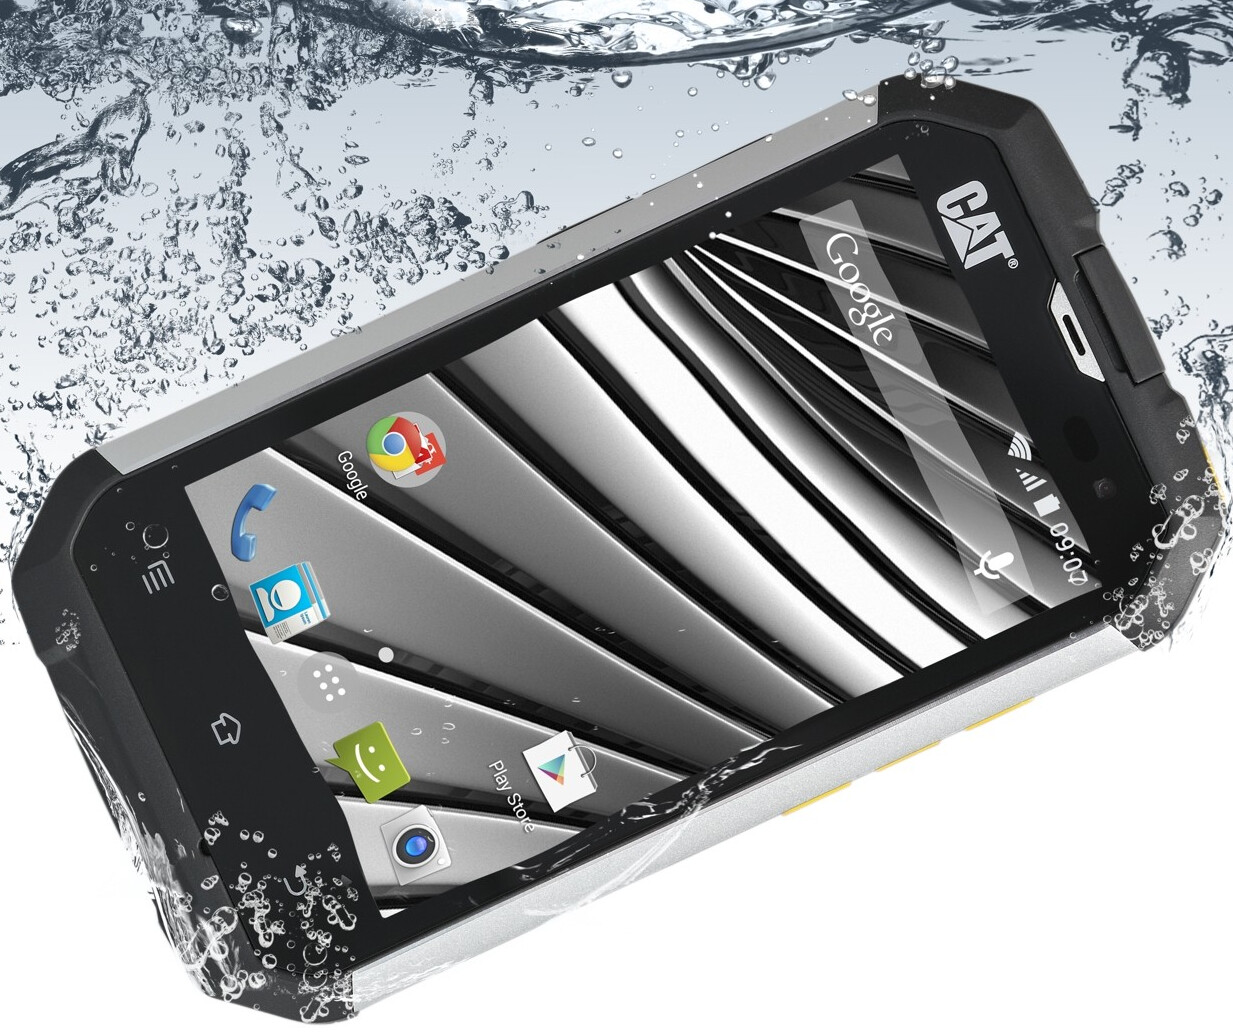 Cat B15q The World S Toughest Android Kitkat Smartphone